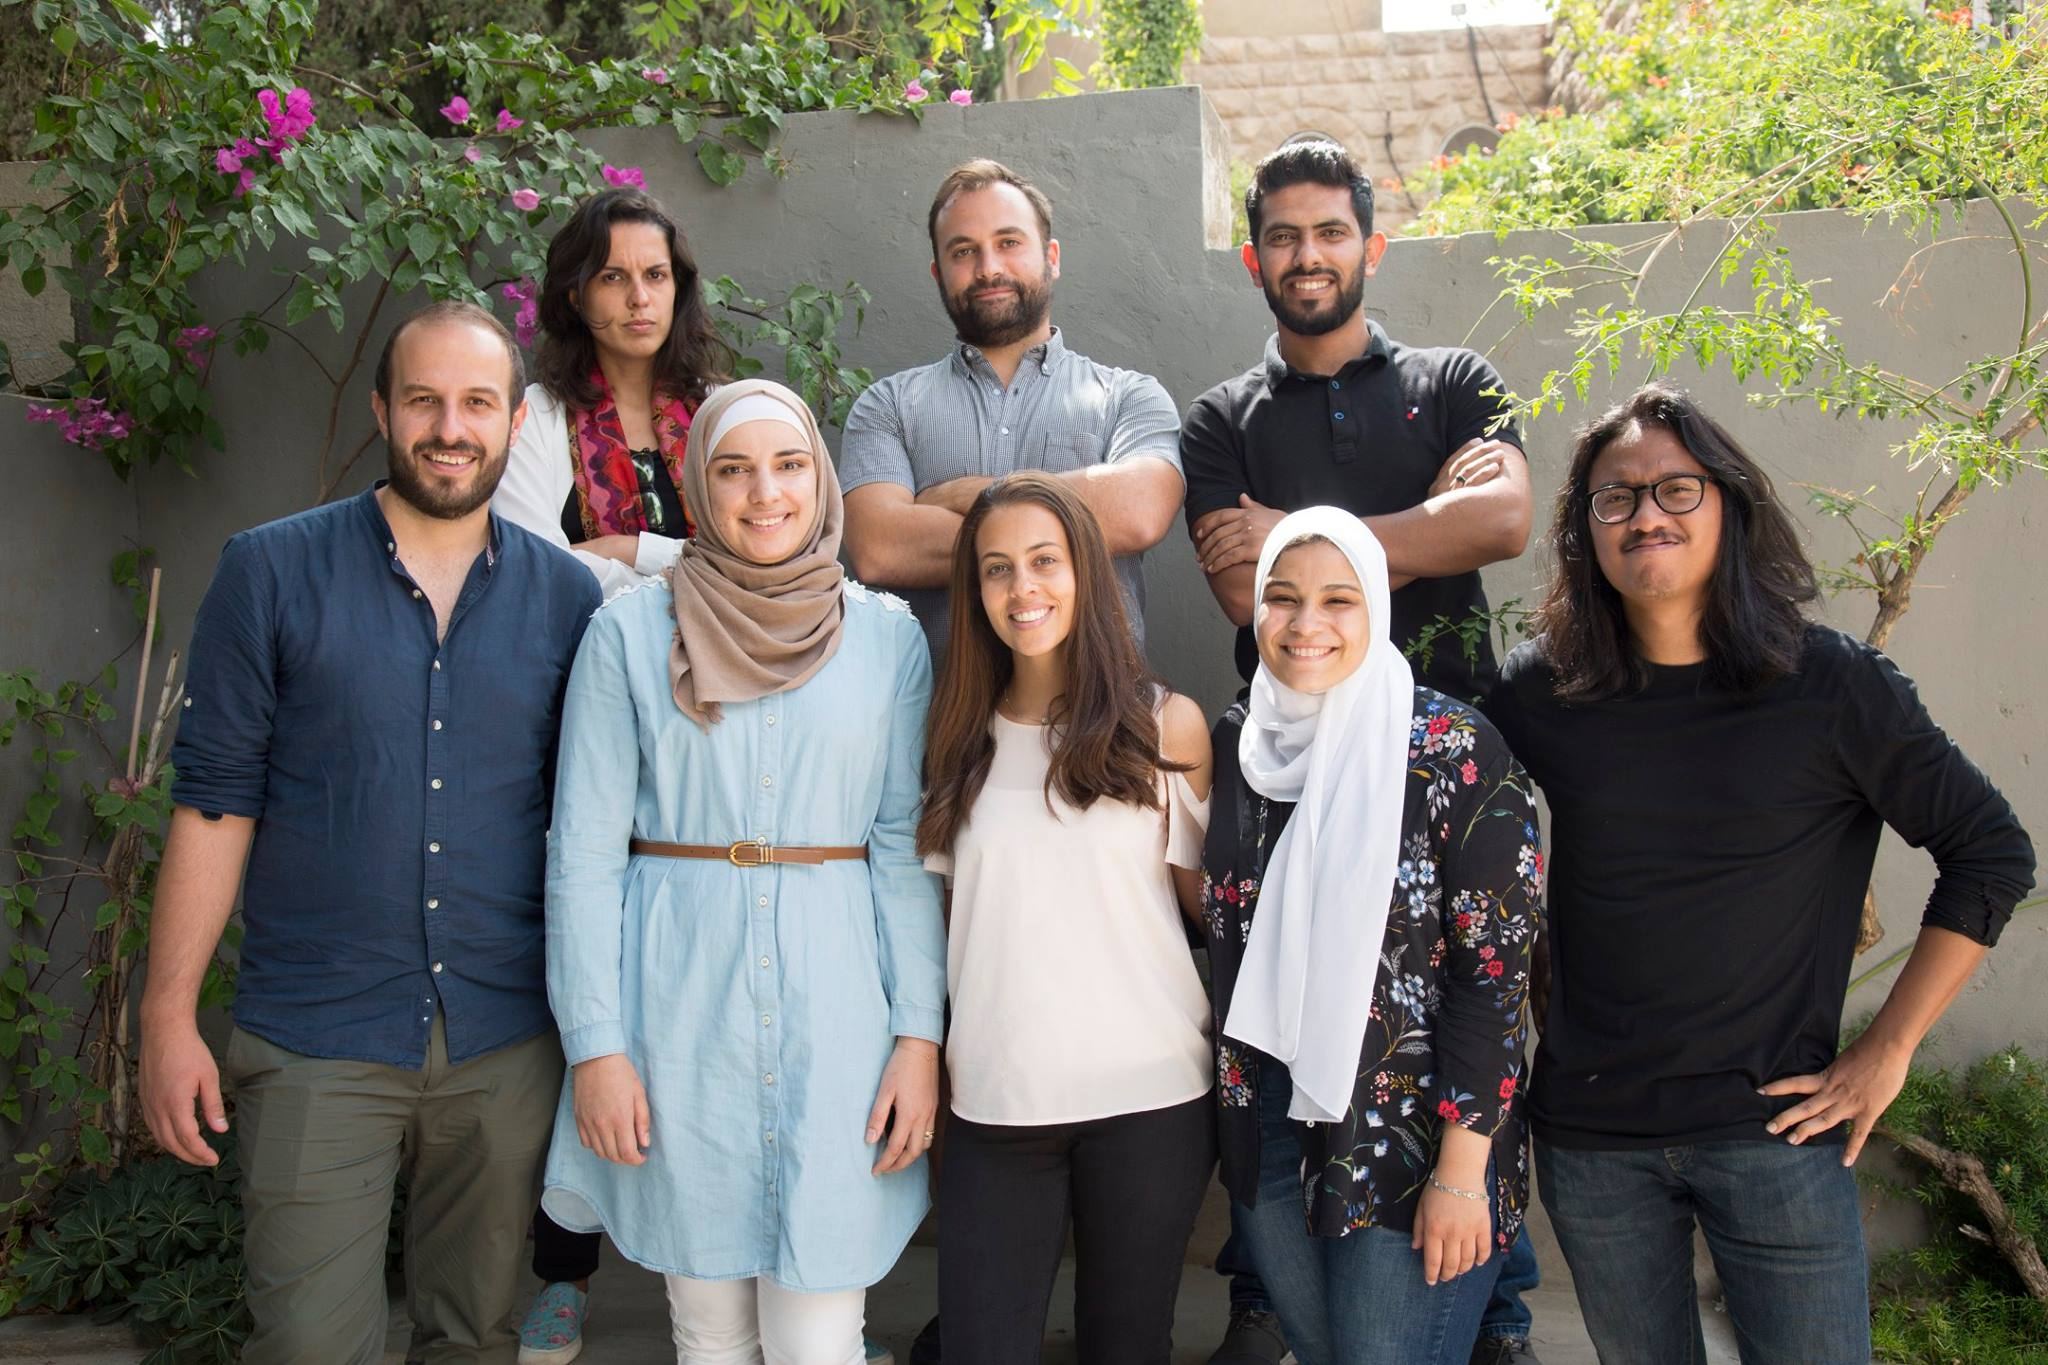 Back row (l to r): Rachel (data journalist from Brazil), Giorgio (team lead, DATA4CHANGE alumni), Saleem (data researcher from Jordan)  Front row (l to r): Daniele (front end developer from Italy), Hadeel (IRCKHF representative), Jude (IRCKHF representative), Reem (graphic designer from Egypt), Lody (creative director and designer from Indonesia)